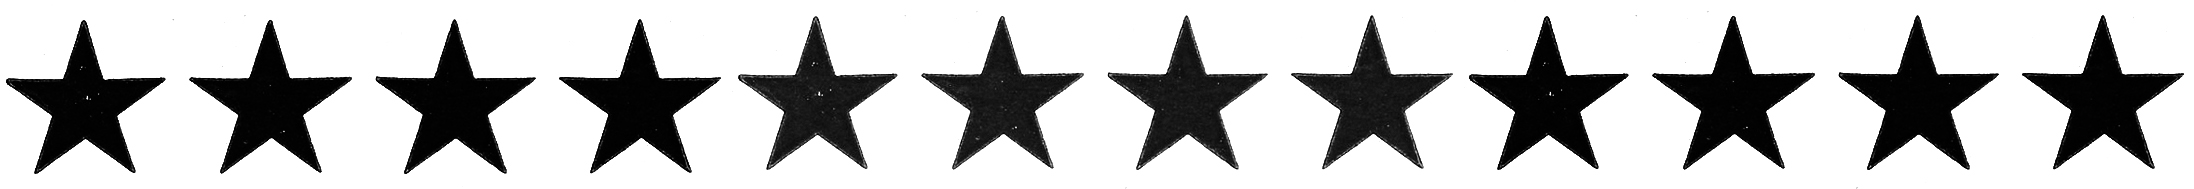 Star Clipart Star Images Free The Graphics Fairy